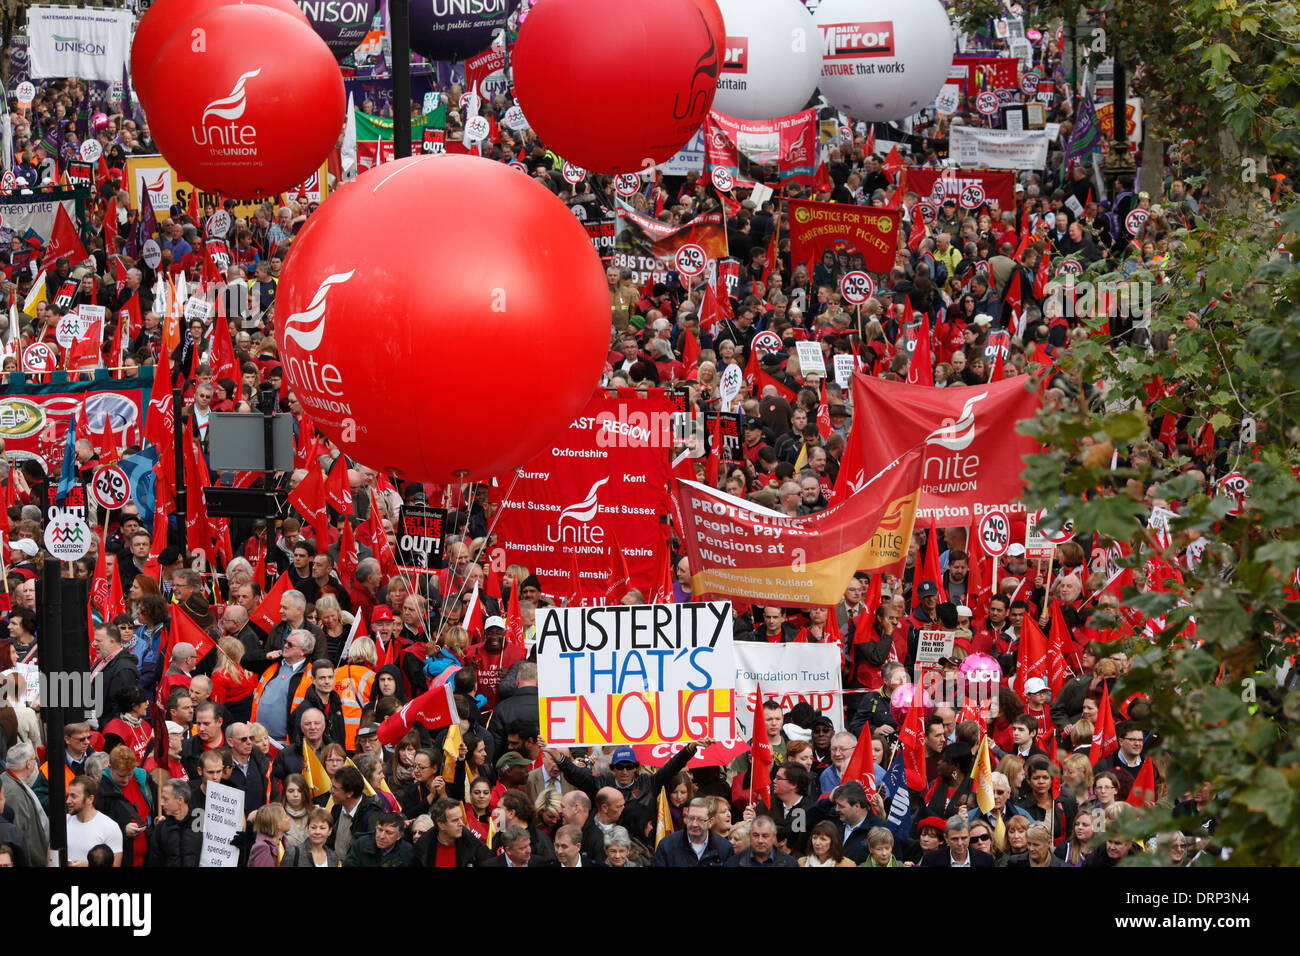 Trade unions members participating in a TUC march in protest against the government's austerity measures - Stock Image